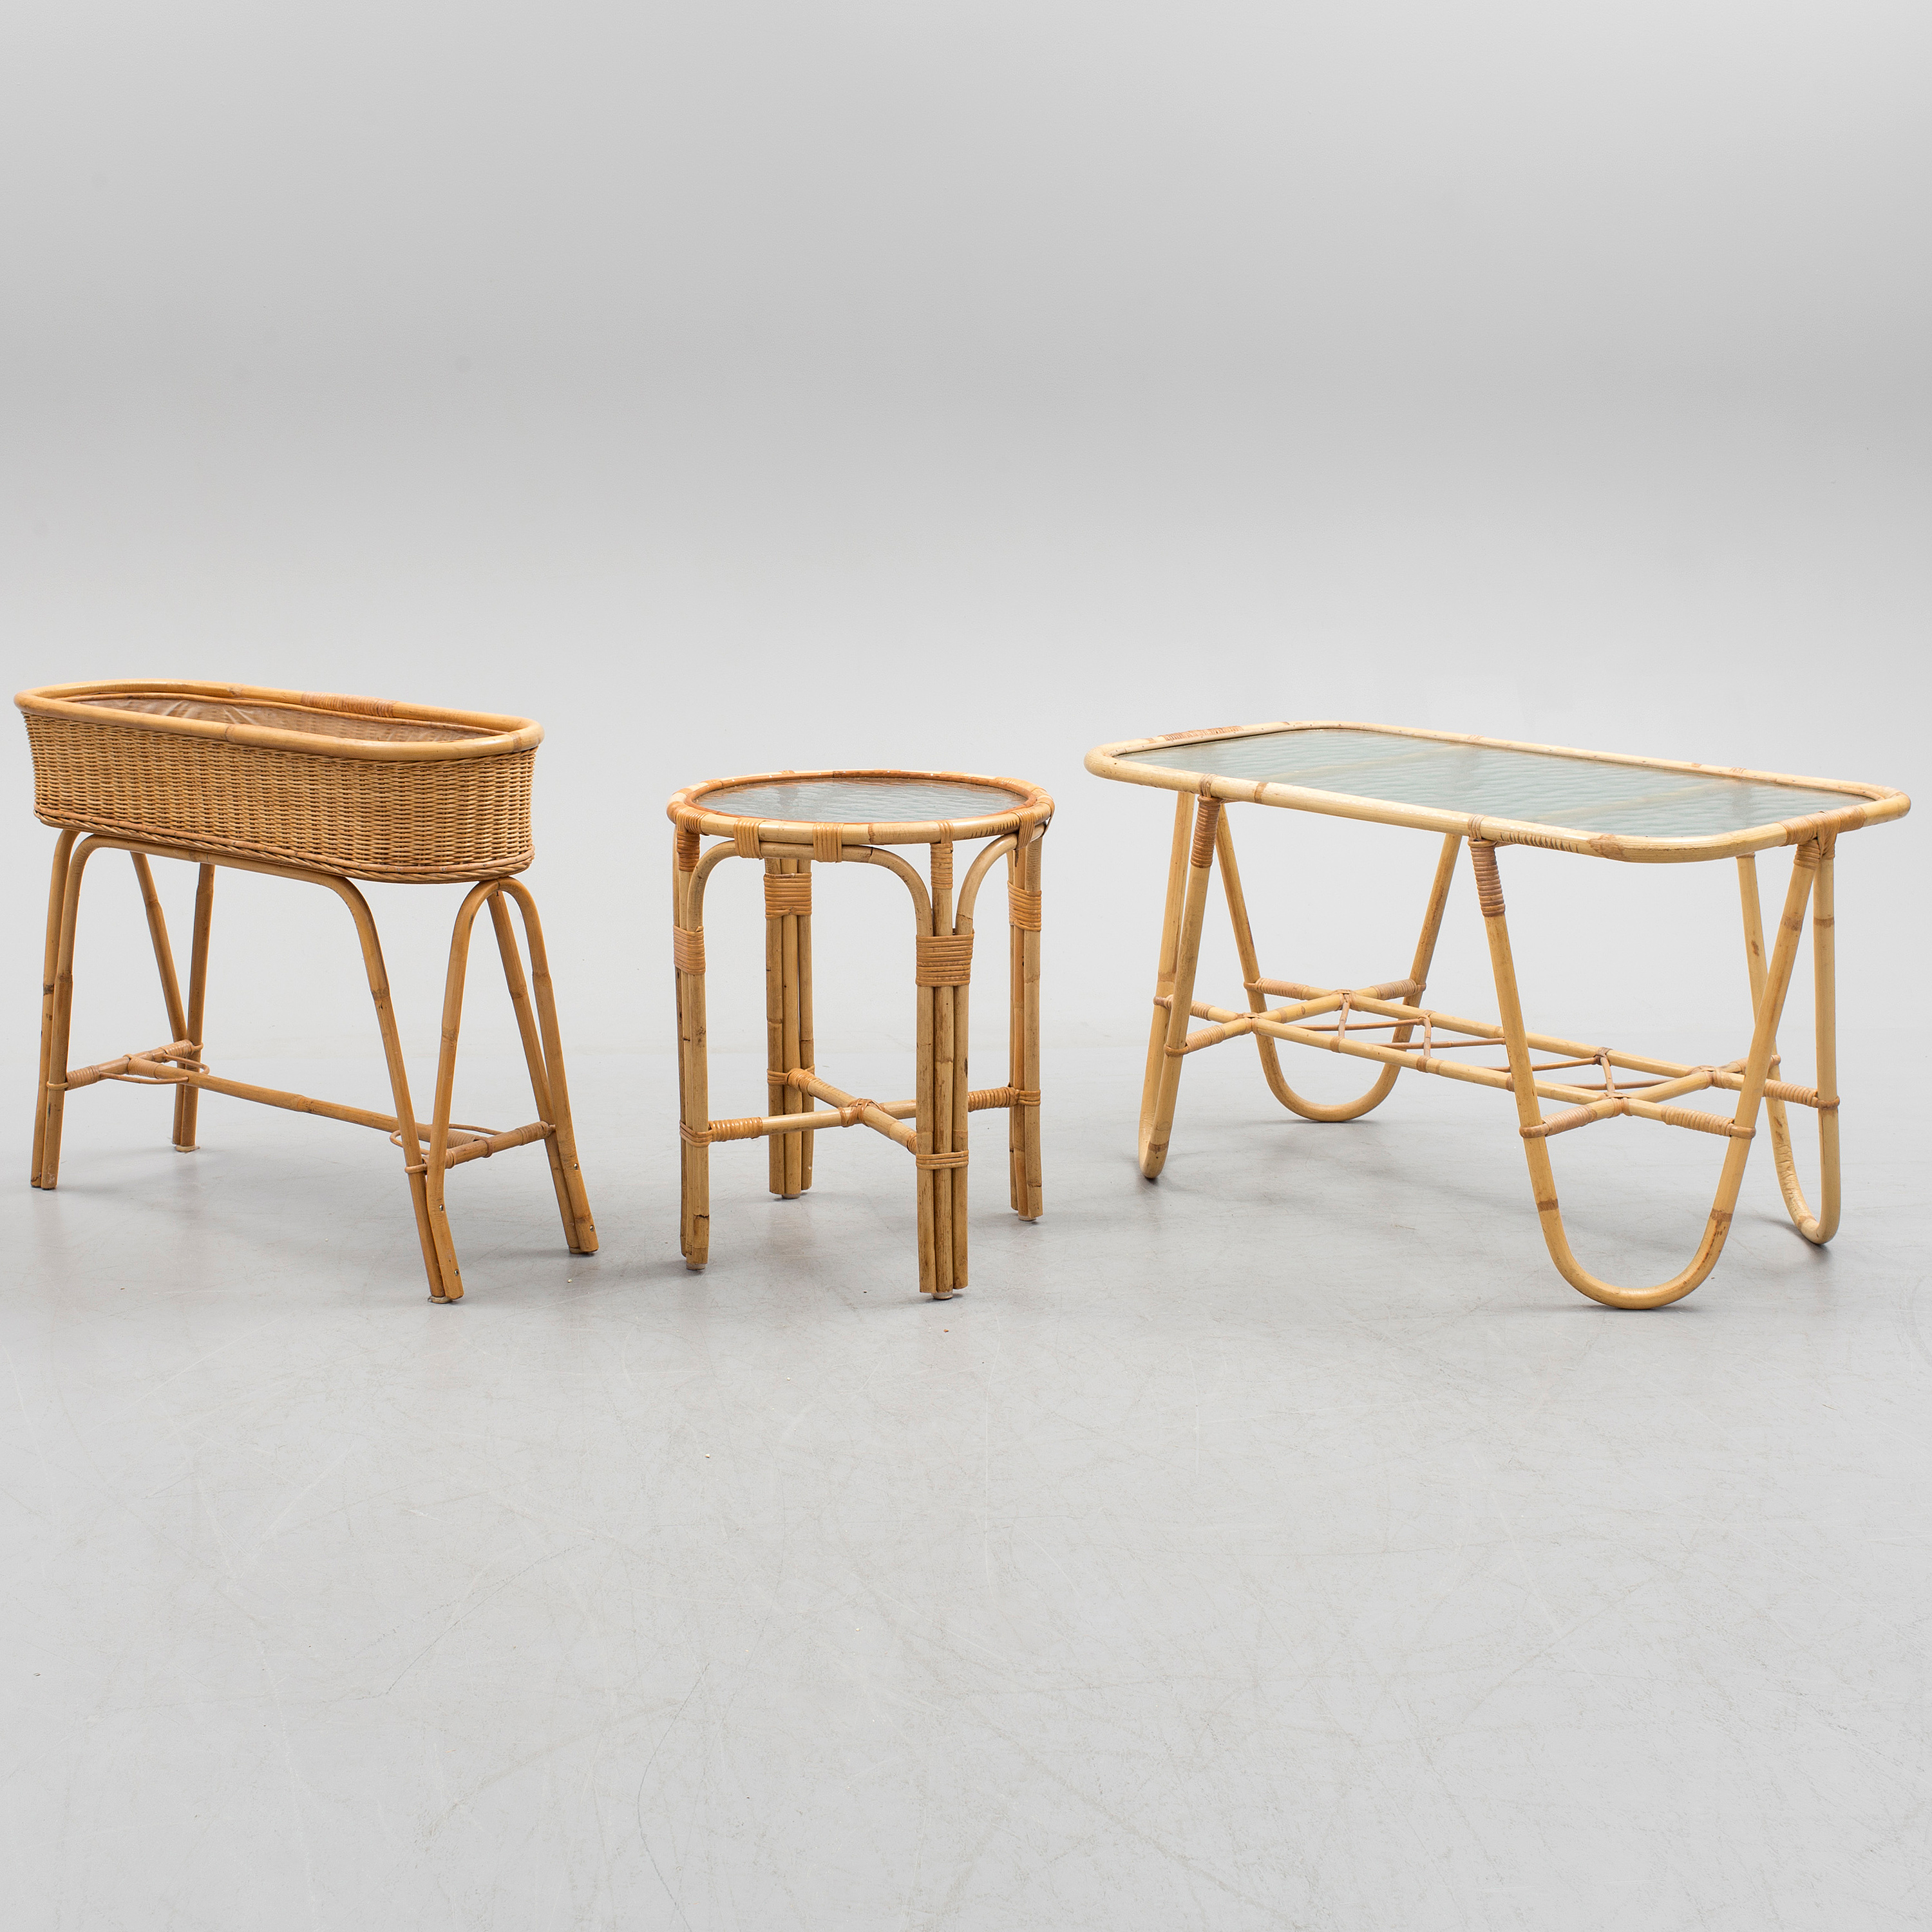 A Bamboo And Rattan Coffee Table Side Table And Plant Stand Bukowskis